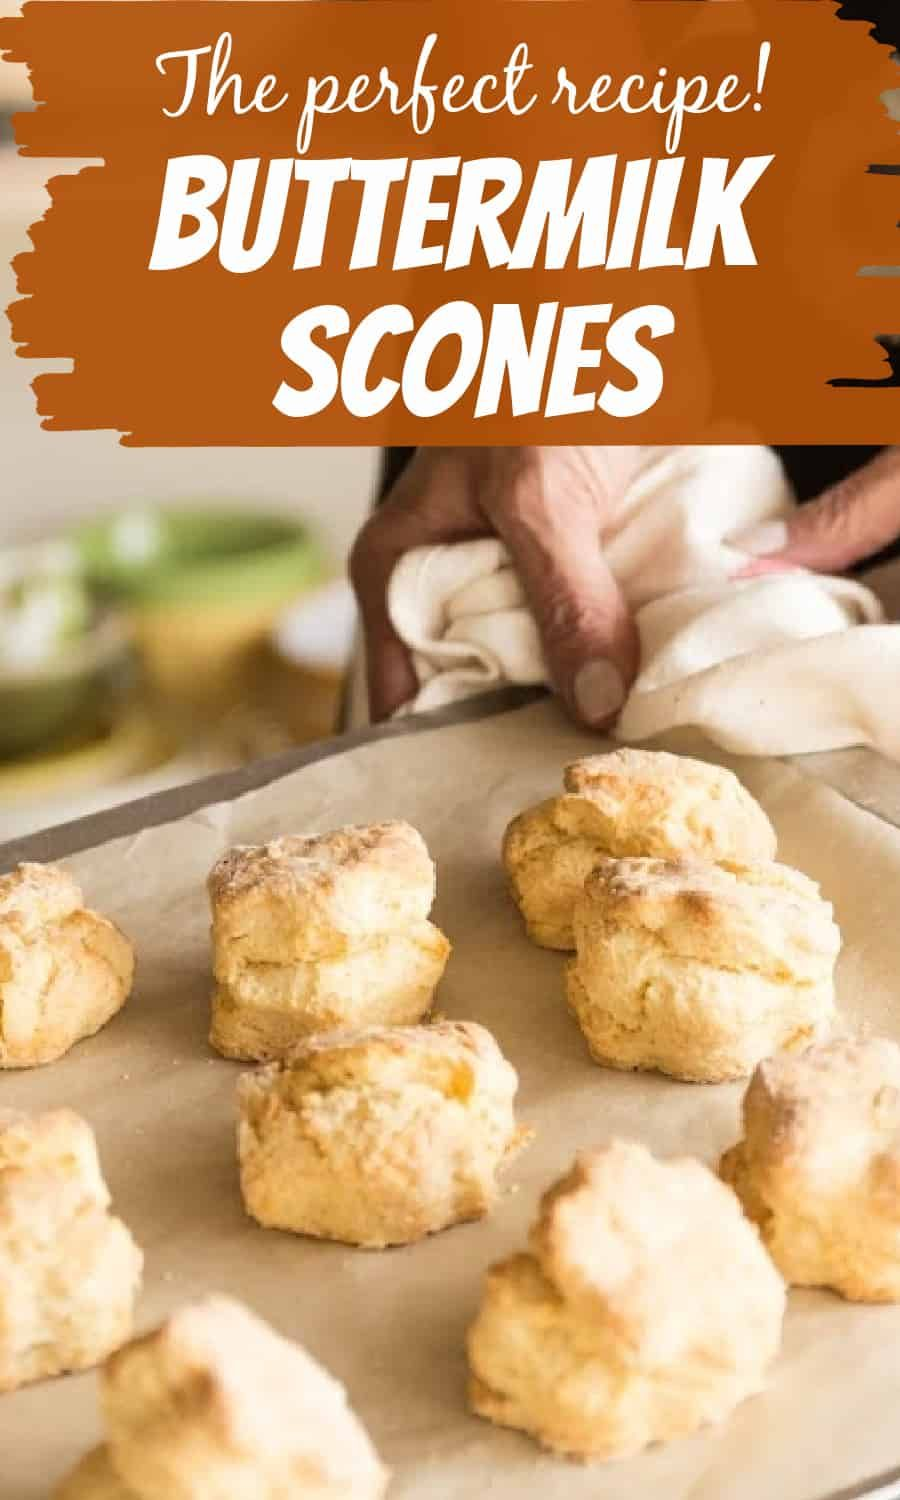 The Perfect Buttermilk Scones Recipe They Are Soft Fluffy And Ready In Less Than An Hour Find My Top Tips For In 2020 Buttermilk Scone Recipe Scone Recipe Recipes